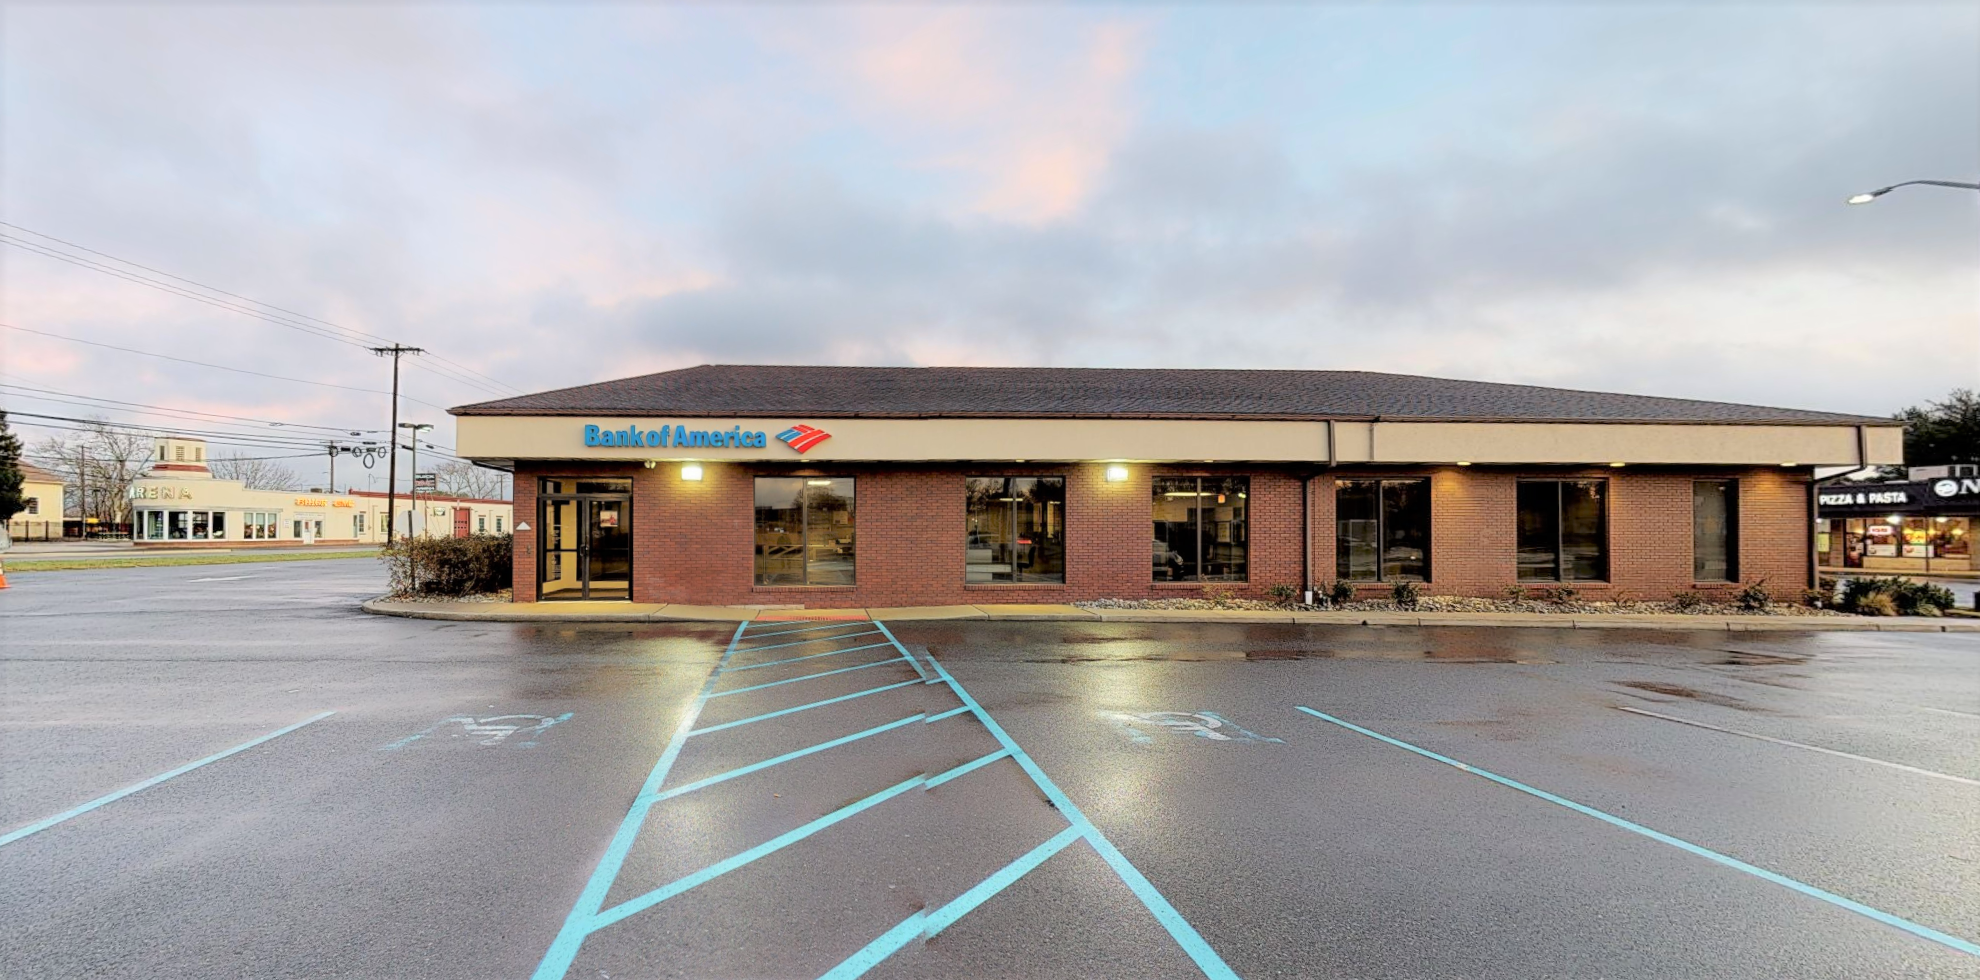 Bank of America financial center with drive-thru ATM and teller   222 S White Horse Pike, Hammonton, NJ 08037